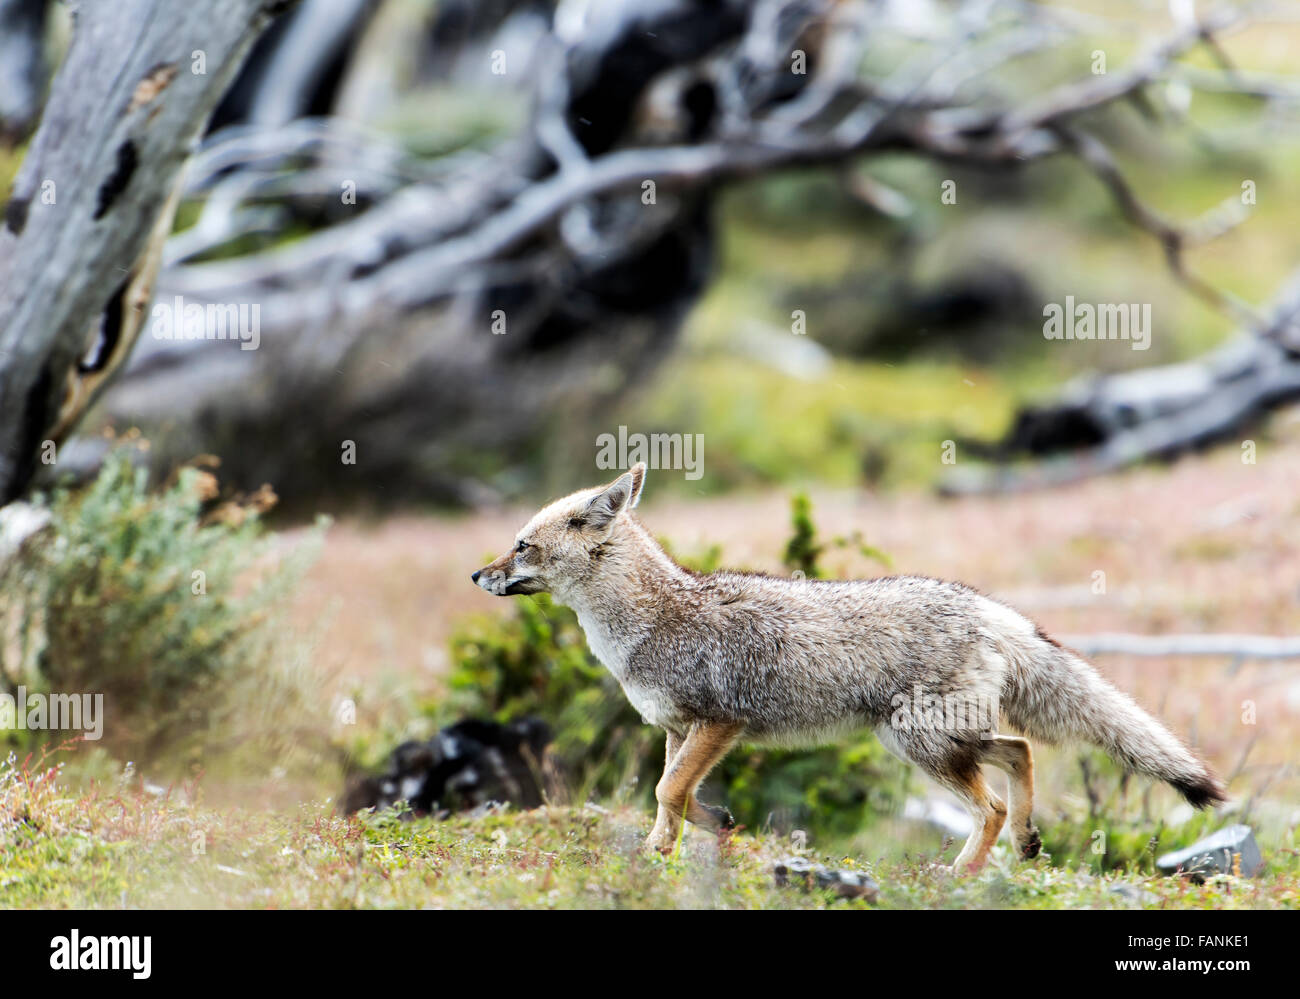 South American / Patagonian Grey Fox (Lycalopex griseus) Torres del Paine National Park Chilean Patagonia Chile - Stock Image